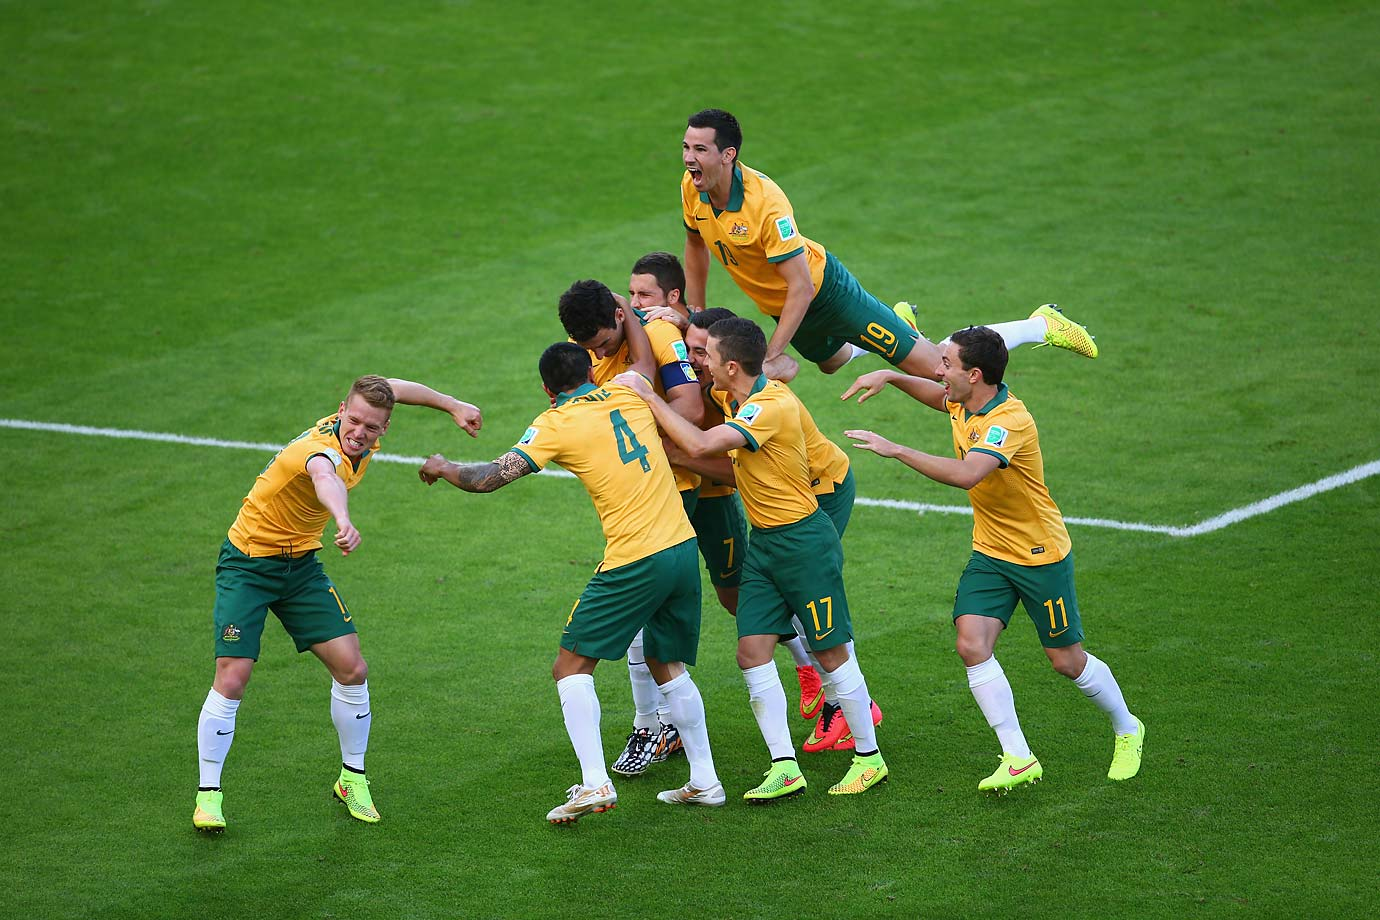 Mile Jedinak of Australia celebrates with his teammates after scoring Australia's second goal of the Group B match against the Netherlands.